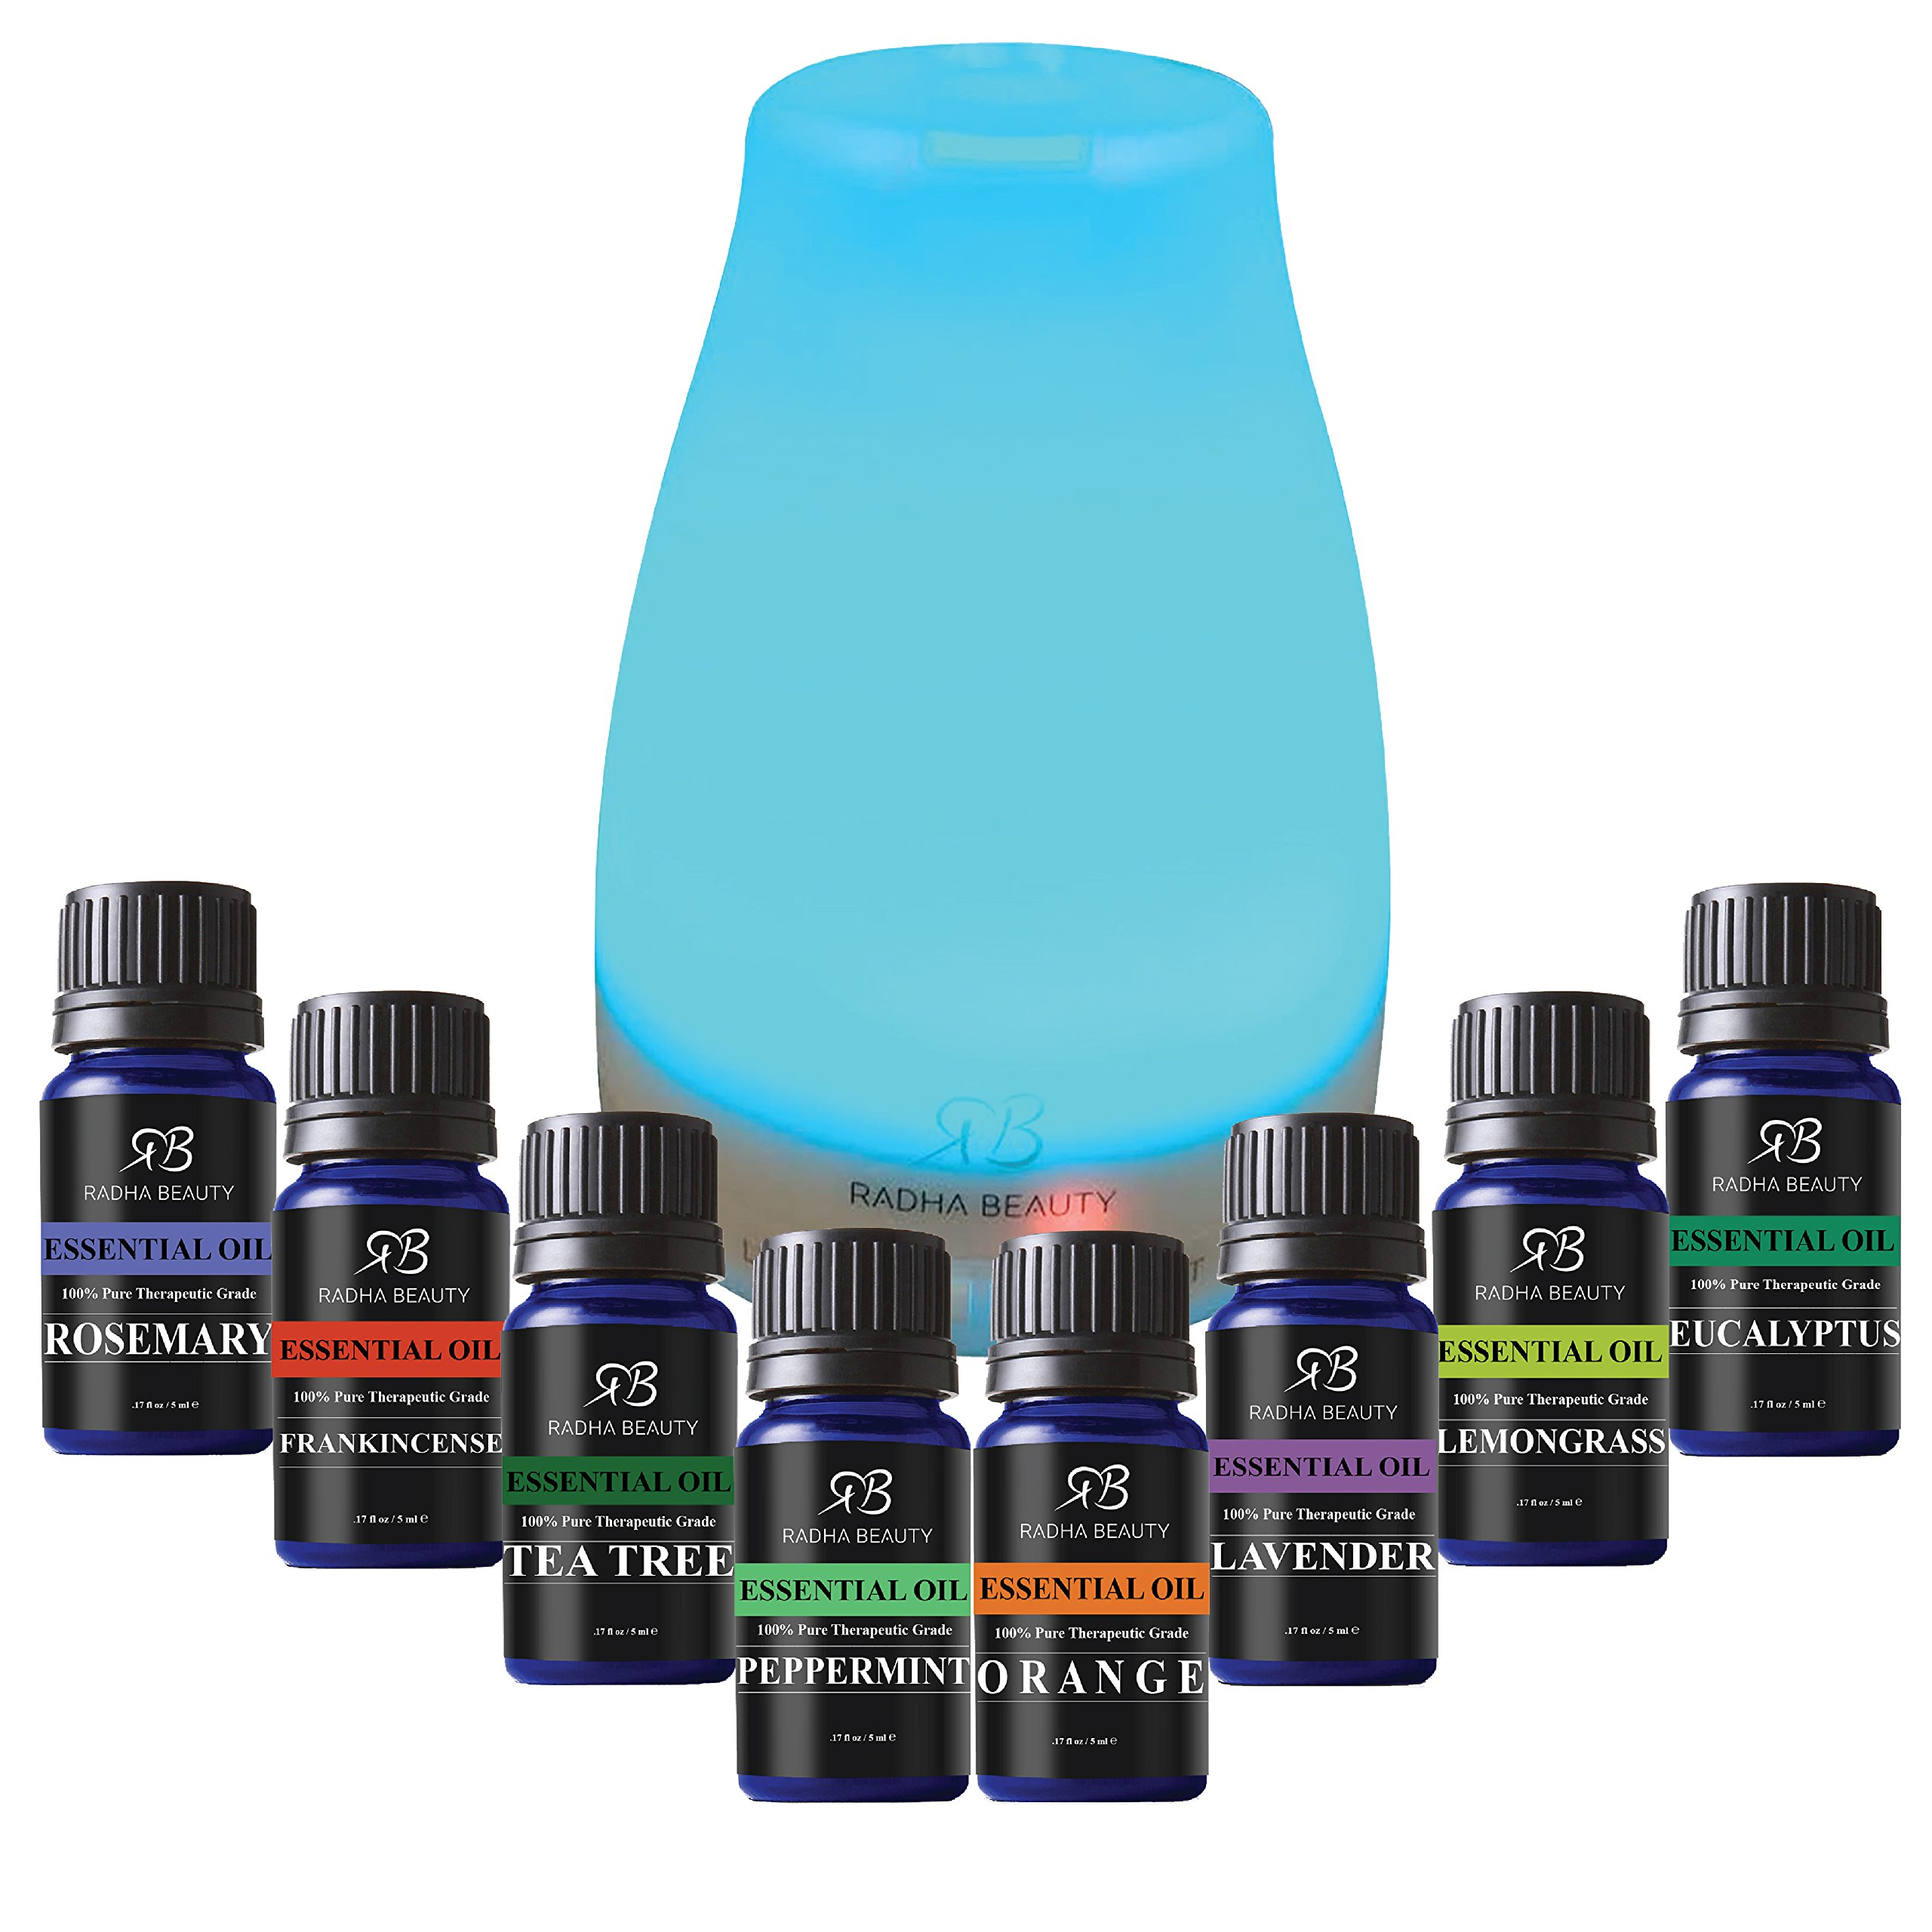 Aromatherapy Top 8 Essential Oil and Diffuser Gift Set - Peppermint, Tea Tree, Lavender & Eucalyptus - Auto Shut-off and 7 Color LED Lights – Therapeutic Grade Oils by Radha Beauty by Radha Beauty (Image #1)